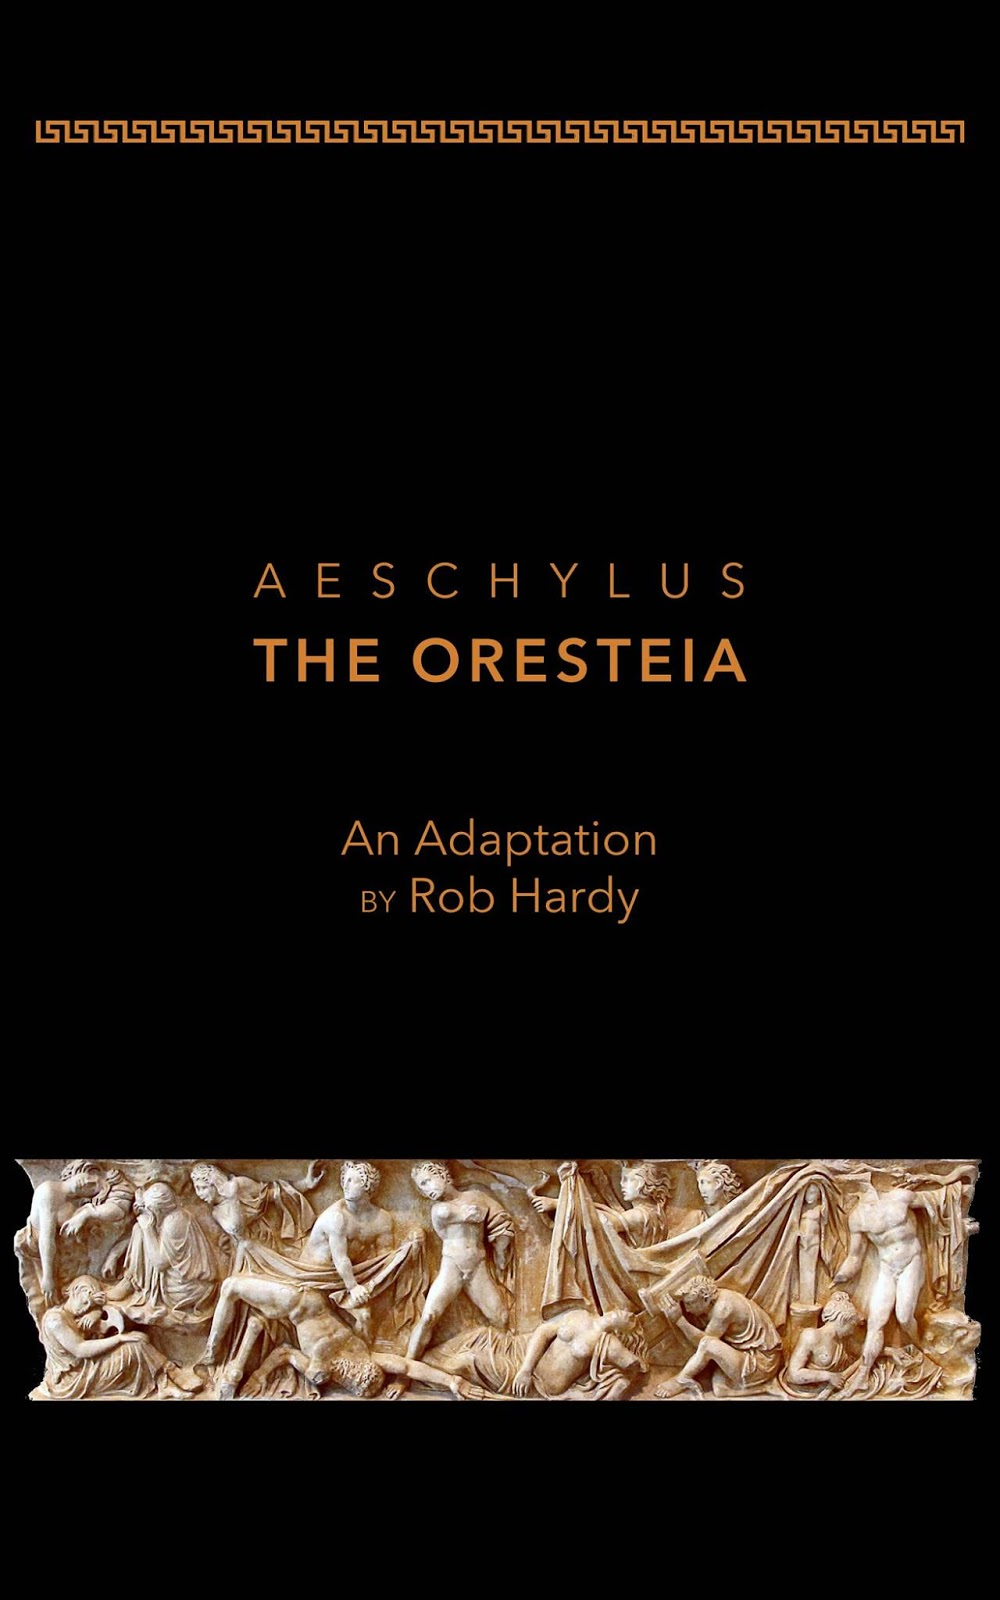 essays aeschylus oresteia Title length color rating : reproduction of the oikos in aeschylus' oresteia - aeschylus' oresteia is the chronicles of a cursed family that includes a circle of.